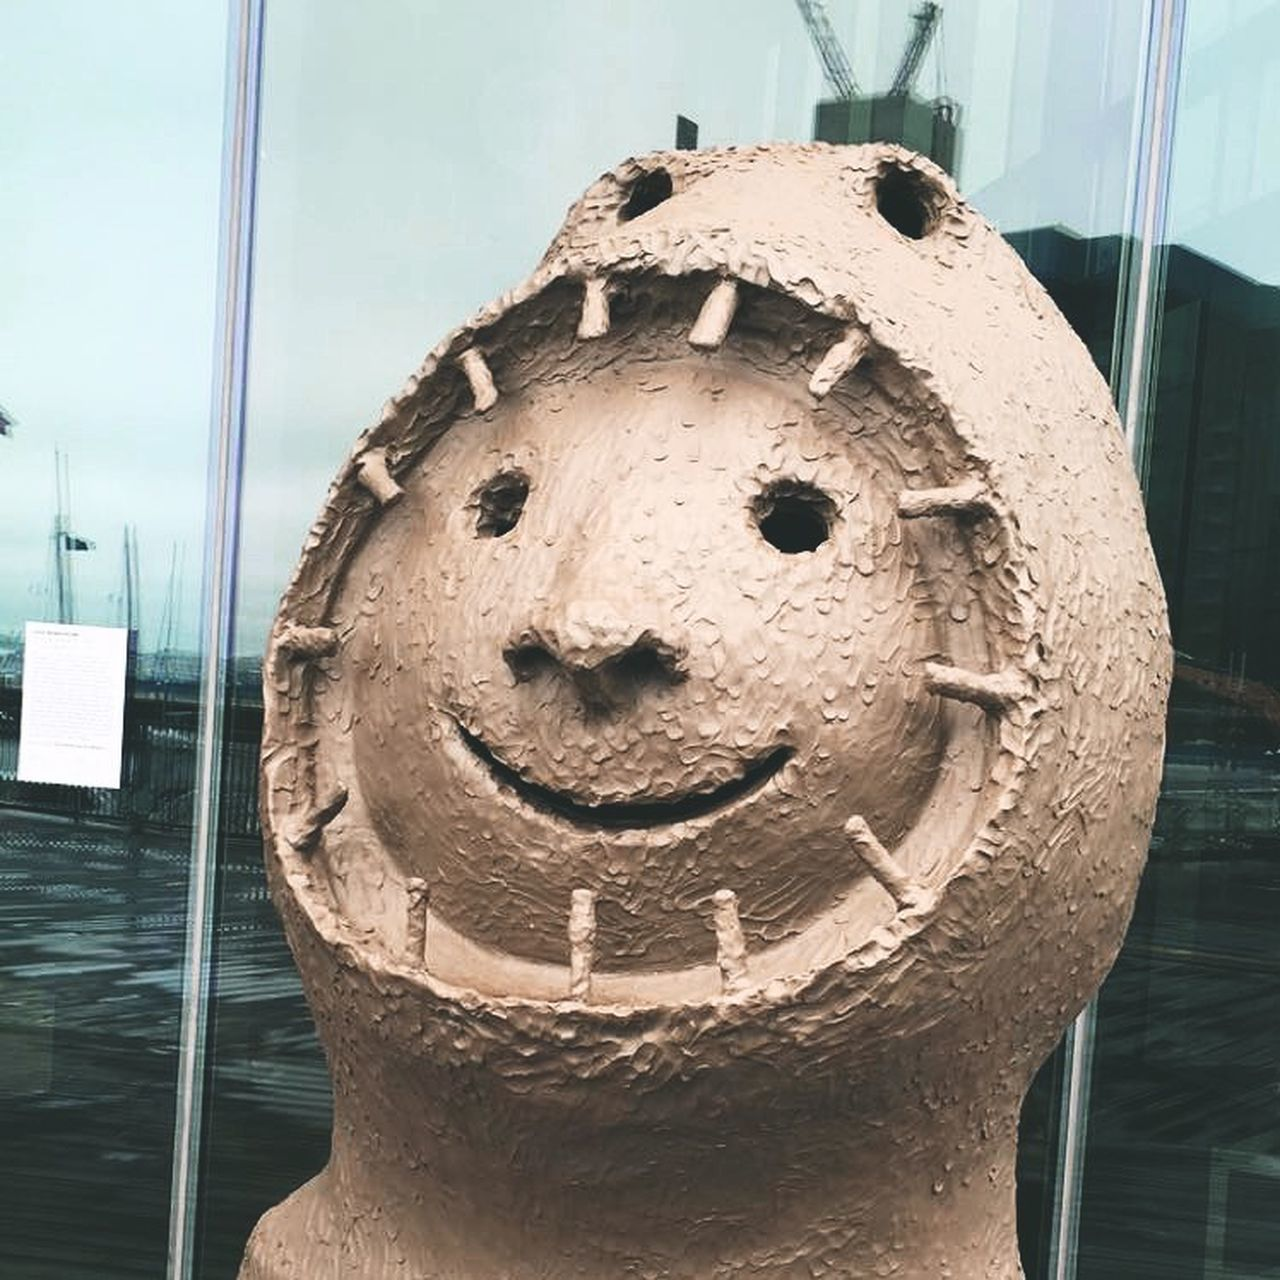 close-up, representation, no people, art and craft, architecture, day, human representation, sculpture, craft, creativity, indoors, built structure, focus on foreground, building, anthropomorphic, arts culture and entertainment, anthropomorphic face, face, statue